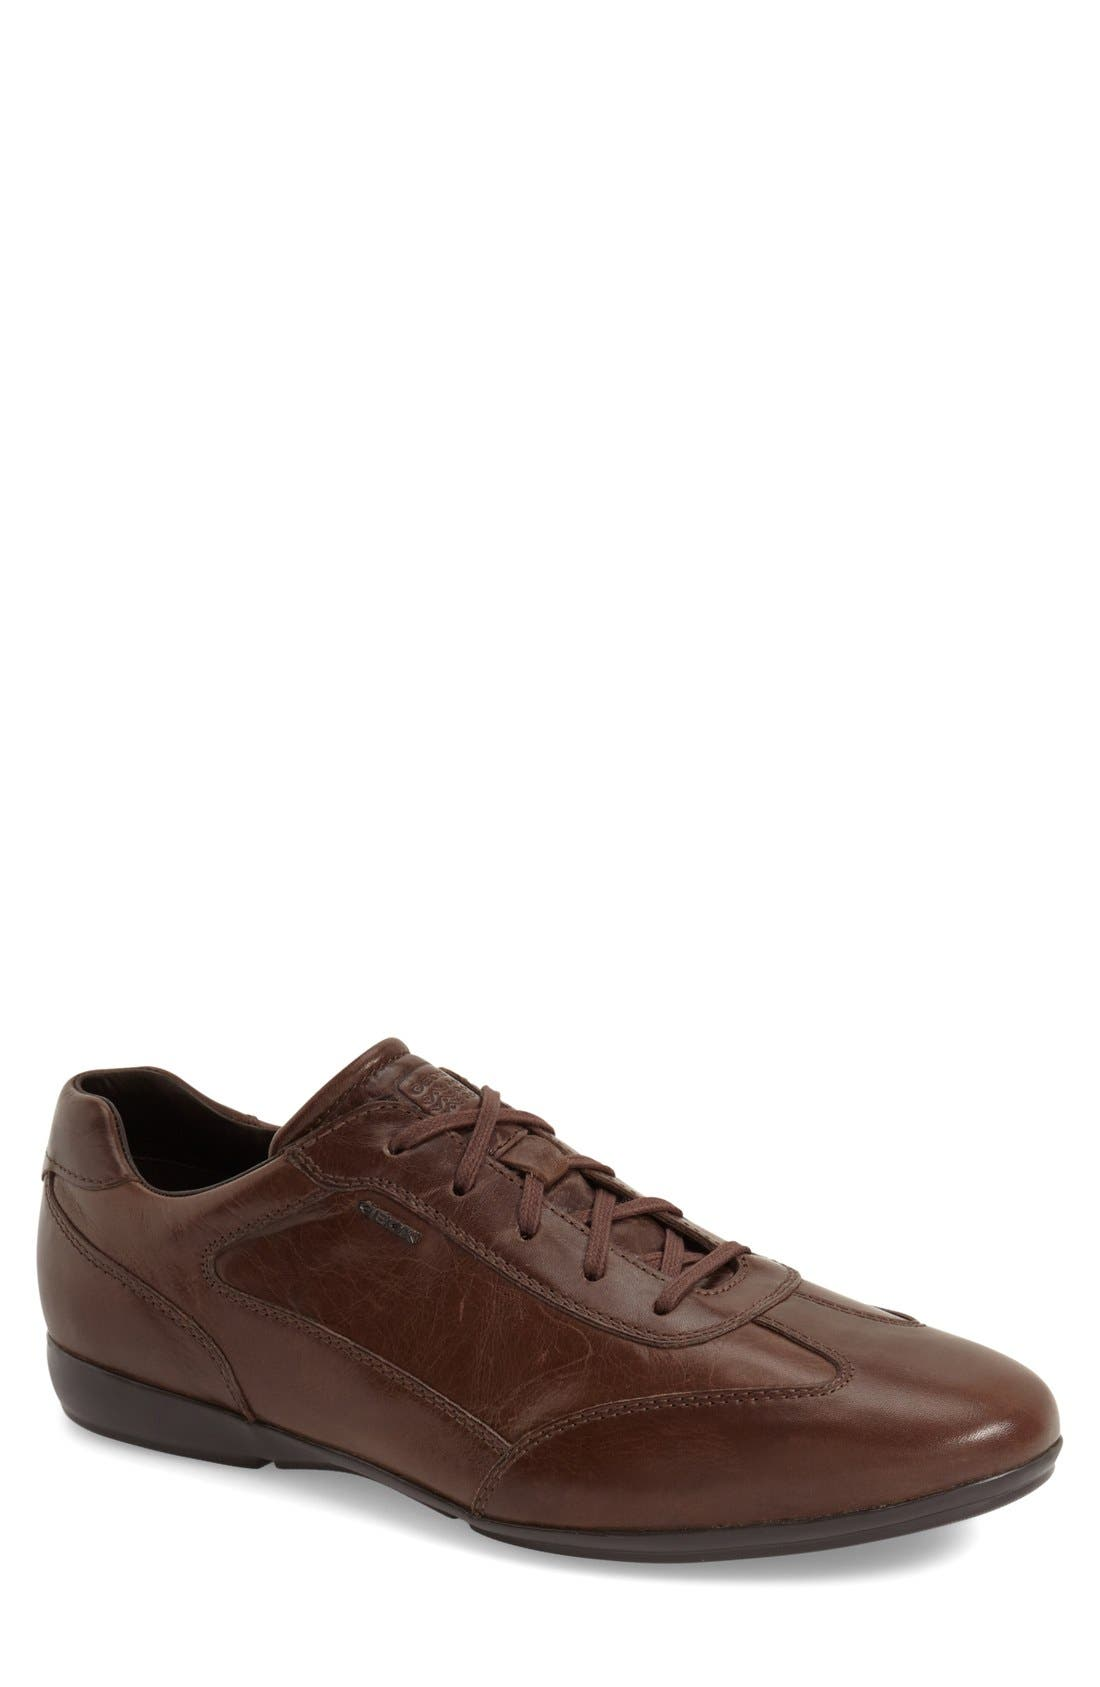 Main Image - Geox Wing Tip Oxford (Men)